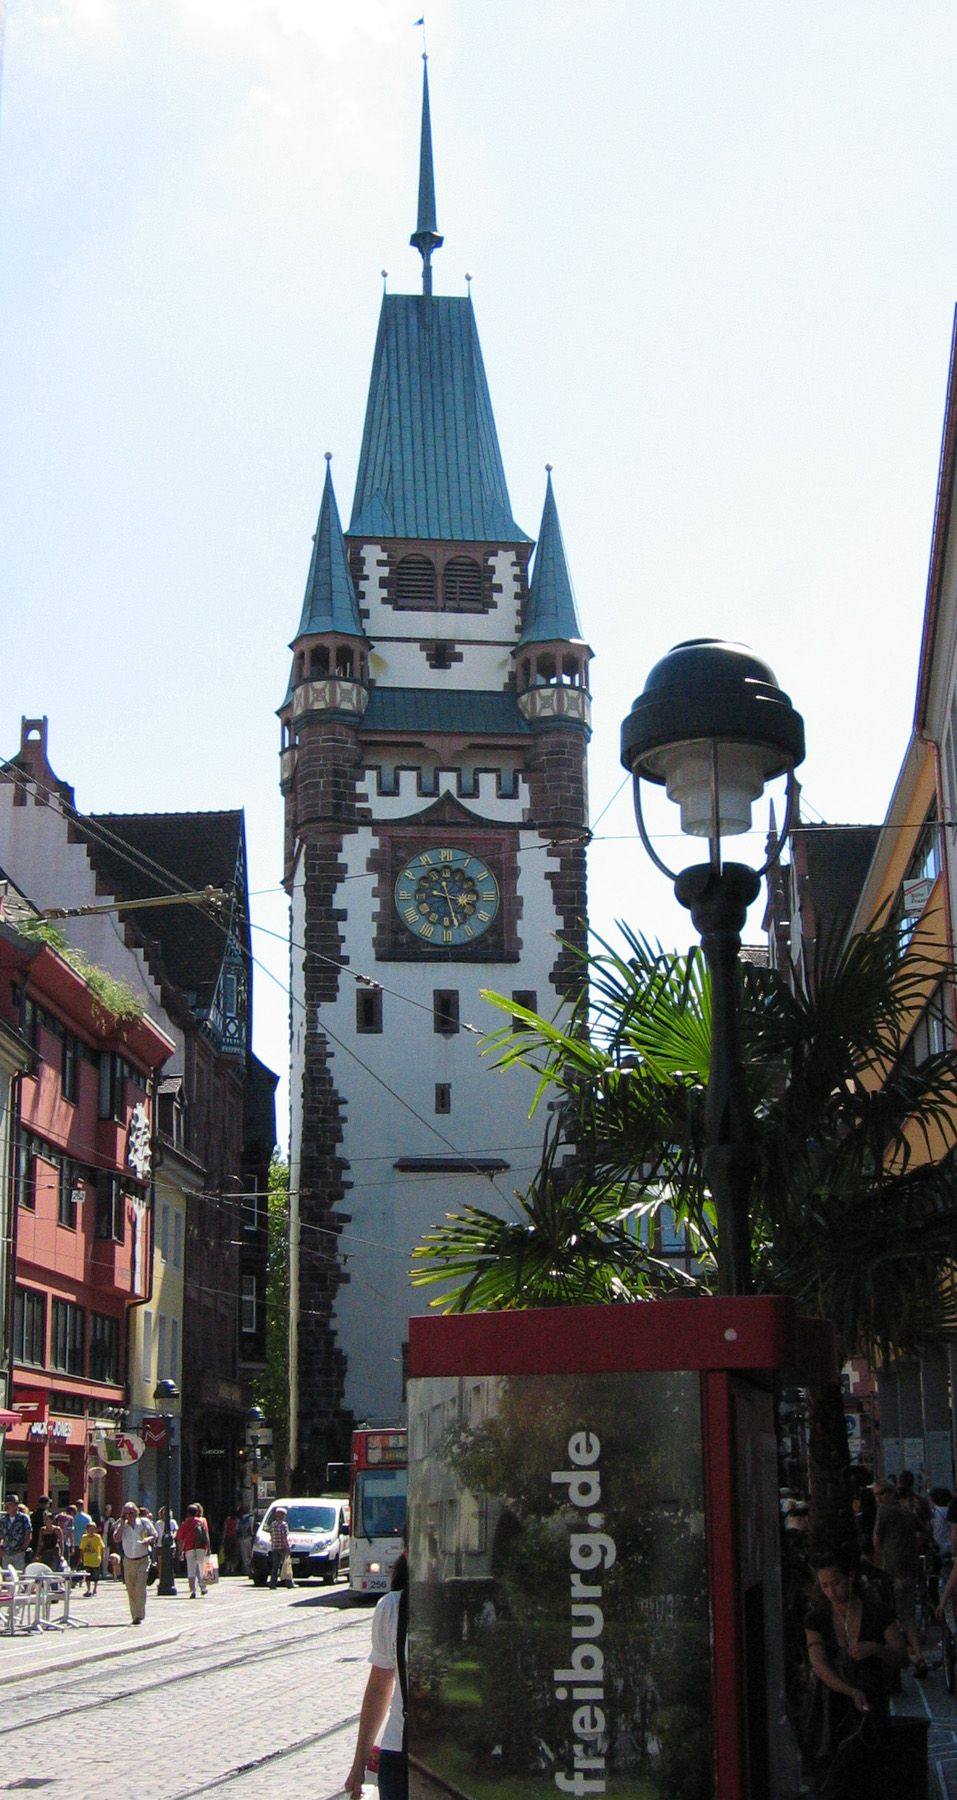 The Martinstor is one of  Freiburg's original city gates,  from the early 13th century.